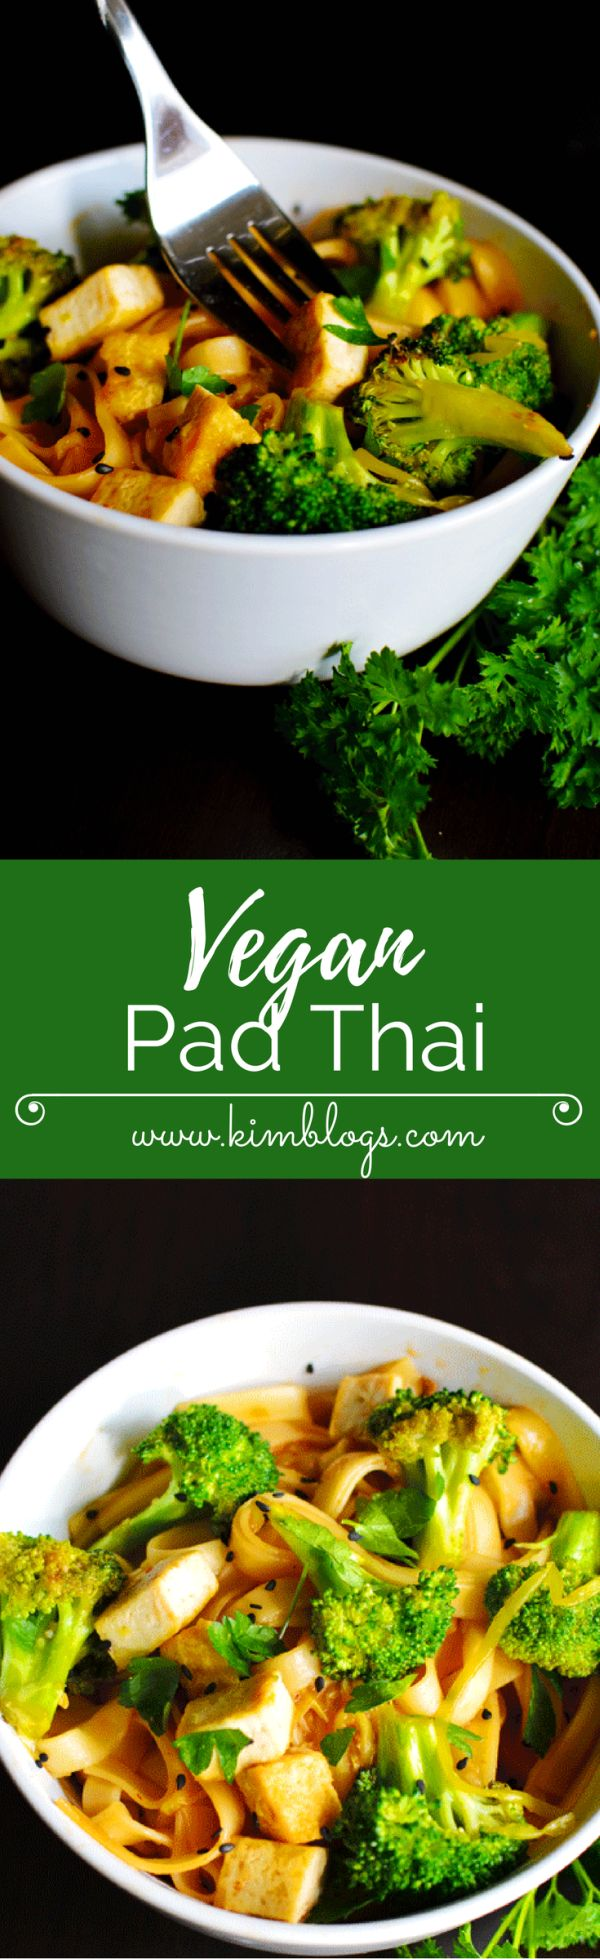 Healthy and filling vegan pad thai made with broccoli, nasoya tofu, zuchinni, and noodles. Combined with sauce this recipe was amazing!- www.kimblogs.com